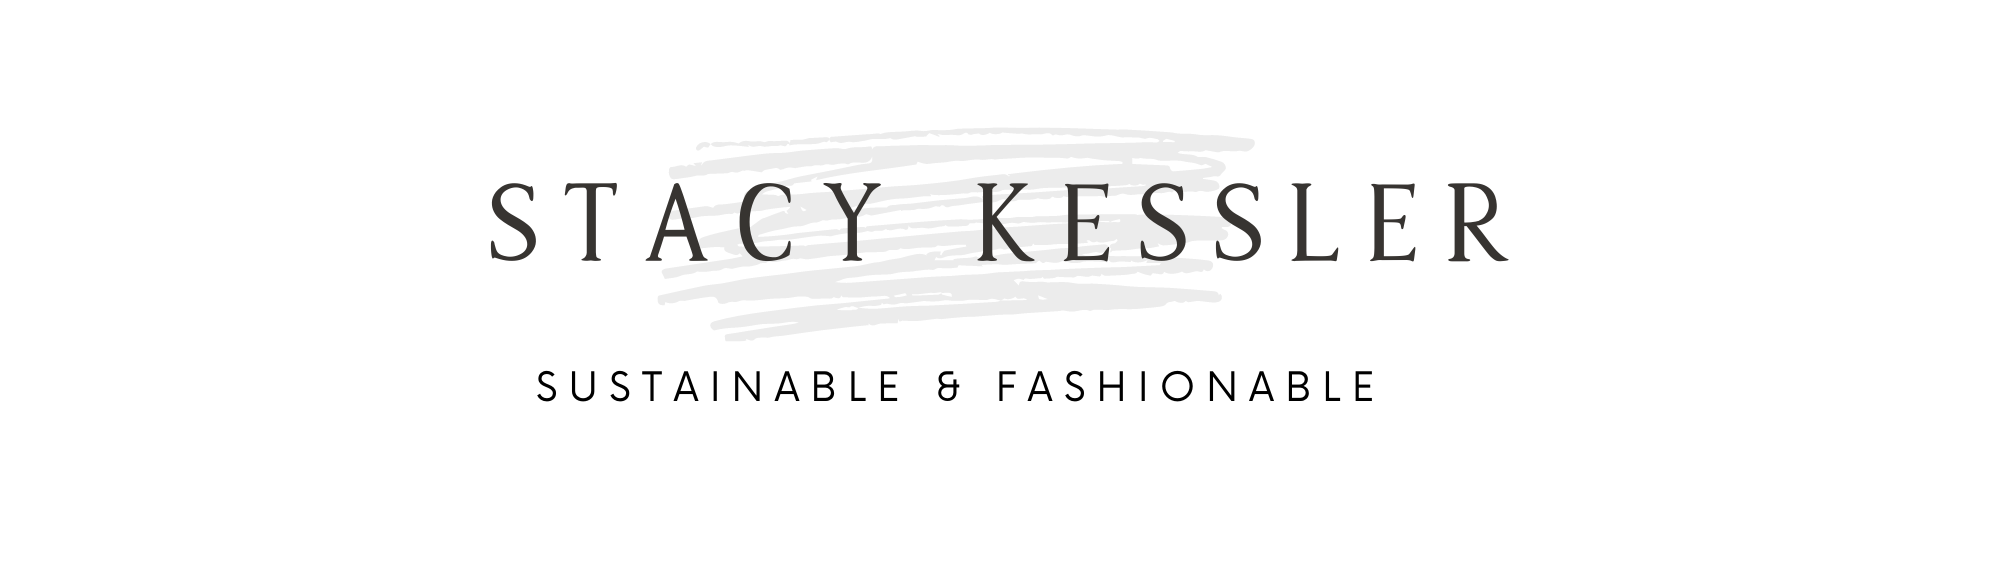 STACY KESSLER®